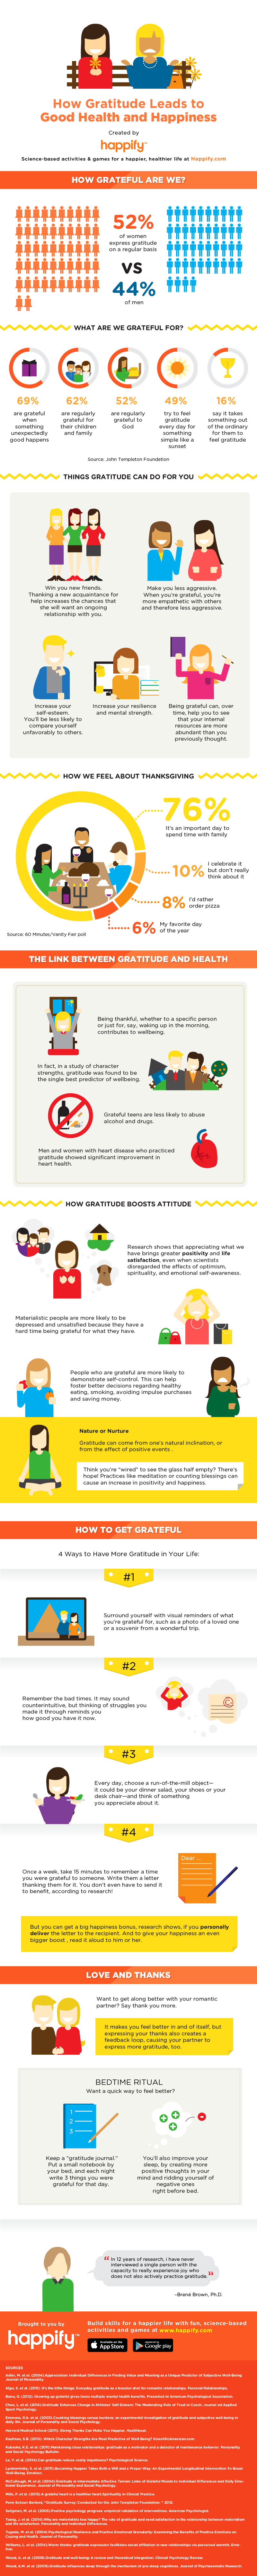 How gratitude leads to good health and happiness